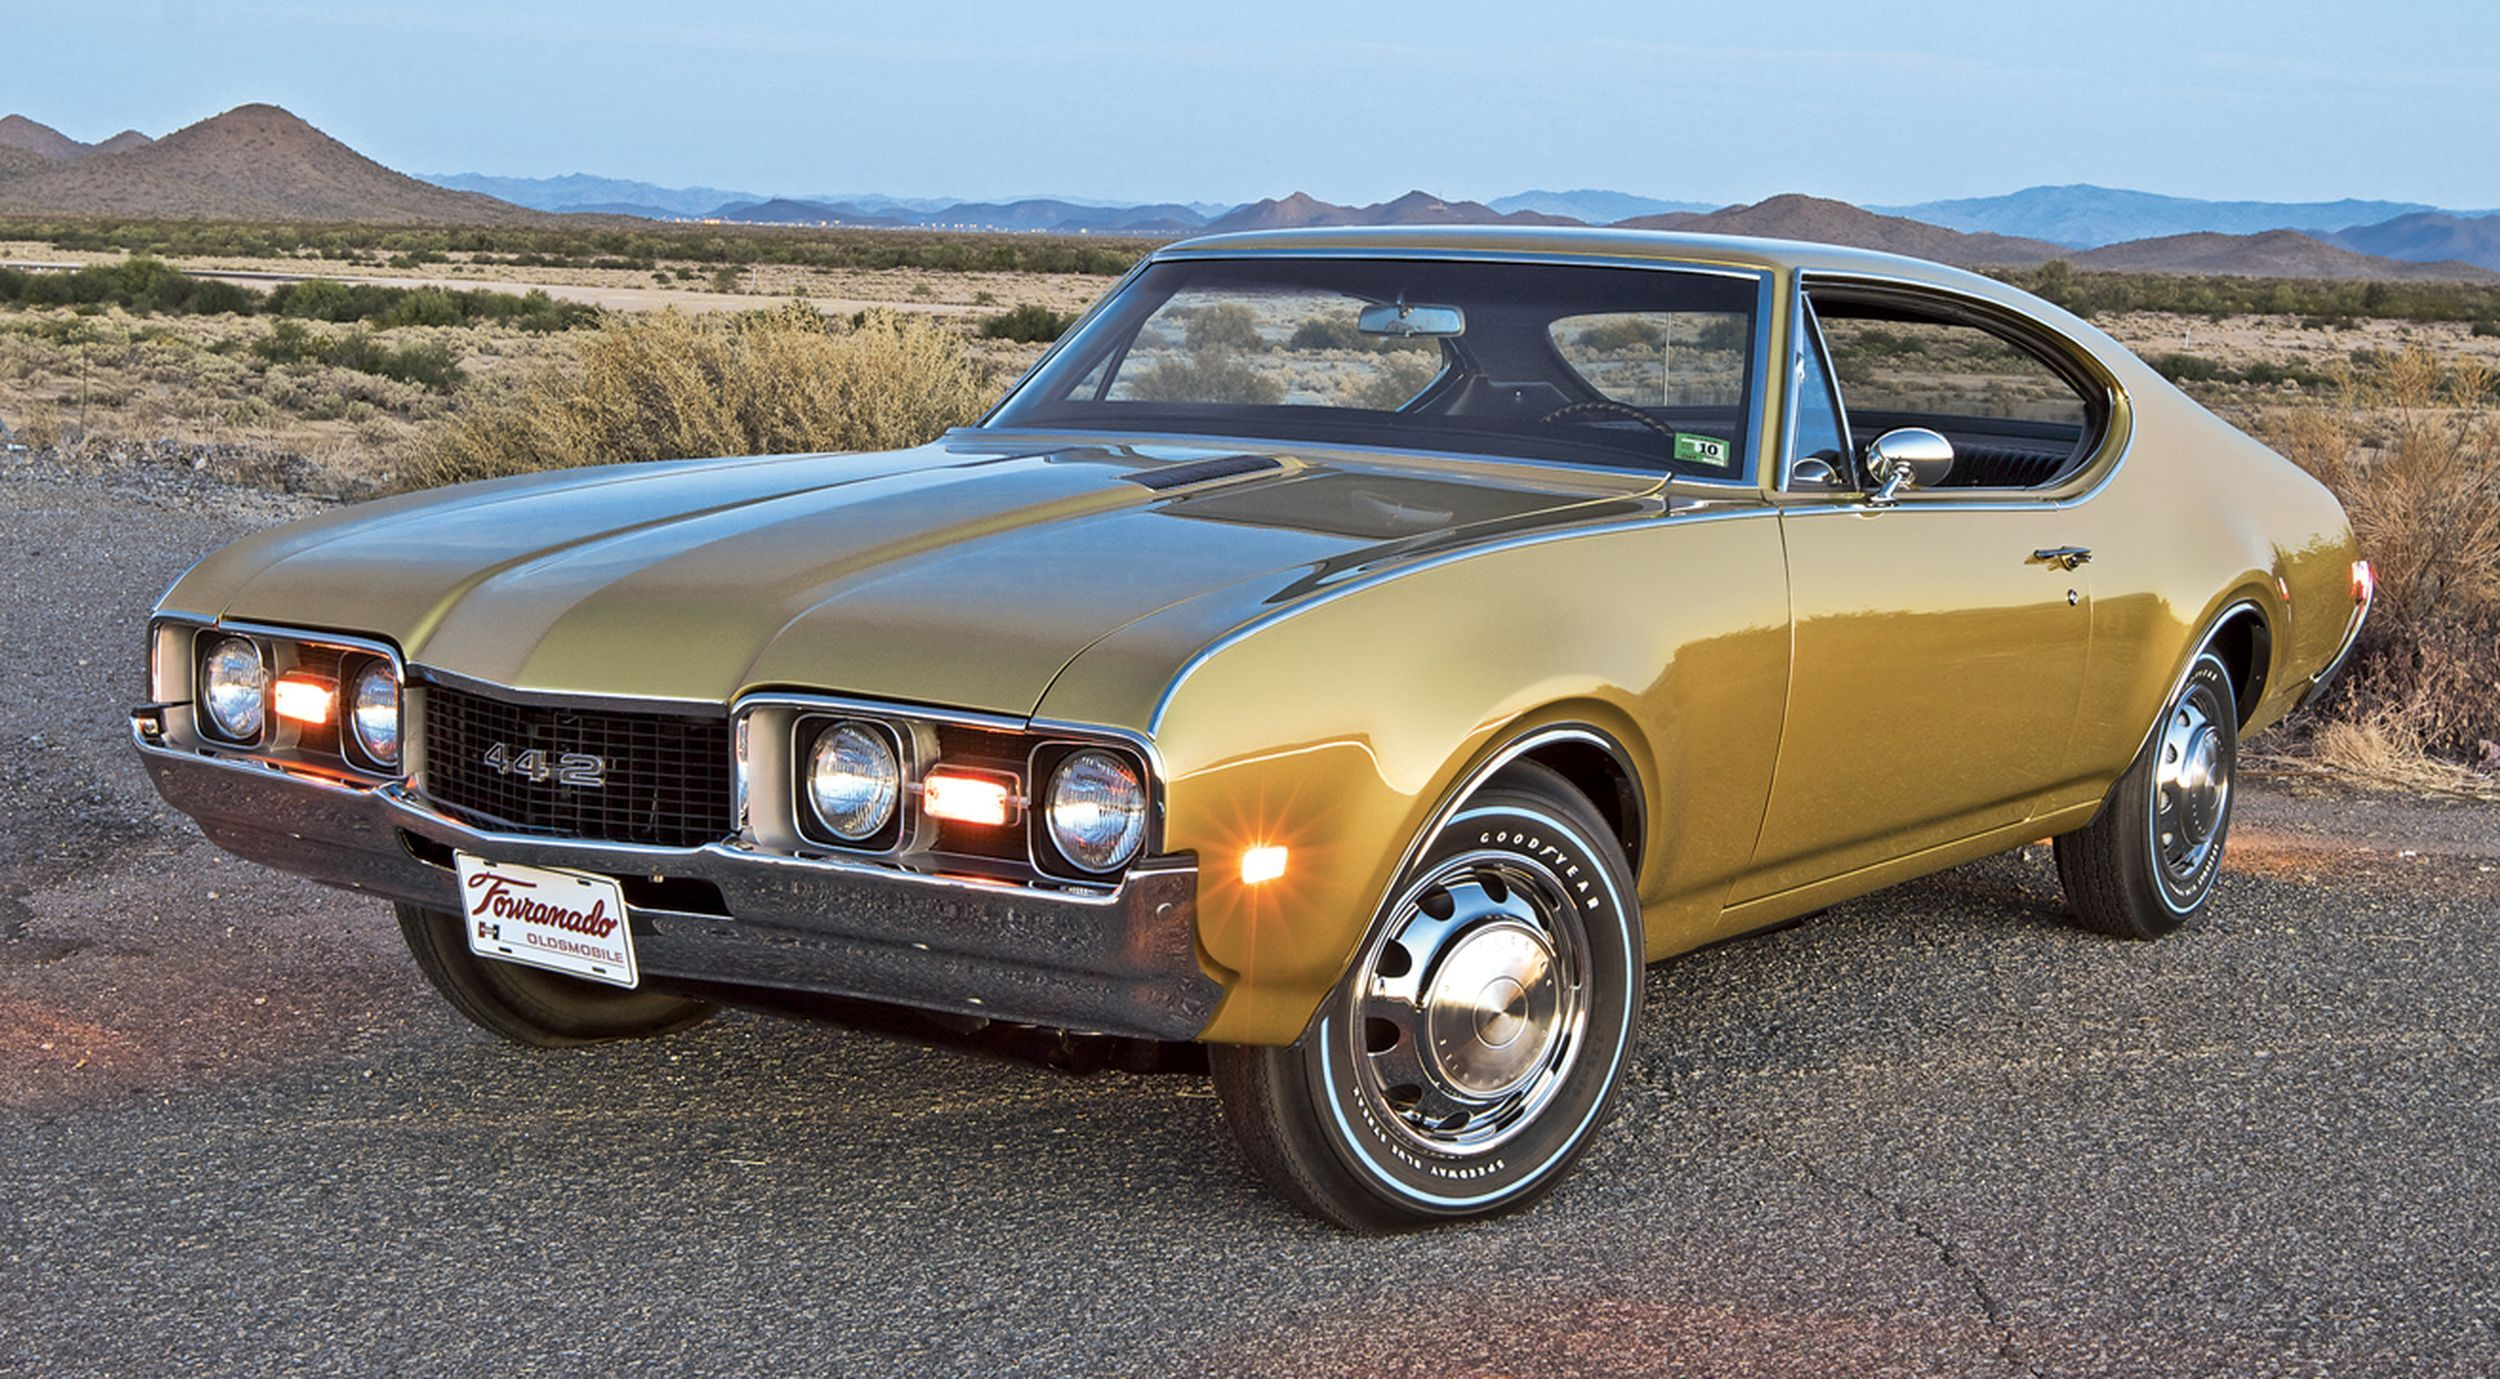 1968 Oldsmobile 442, has a plate on the front which says Tornado and the way it sits and the wheels on it make it look like it could have a Tornado drivetrain.  Not sure why anyone would do that to a 442, certainly wouldn't improve it's performance, handling or value....